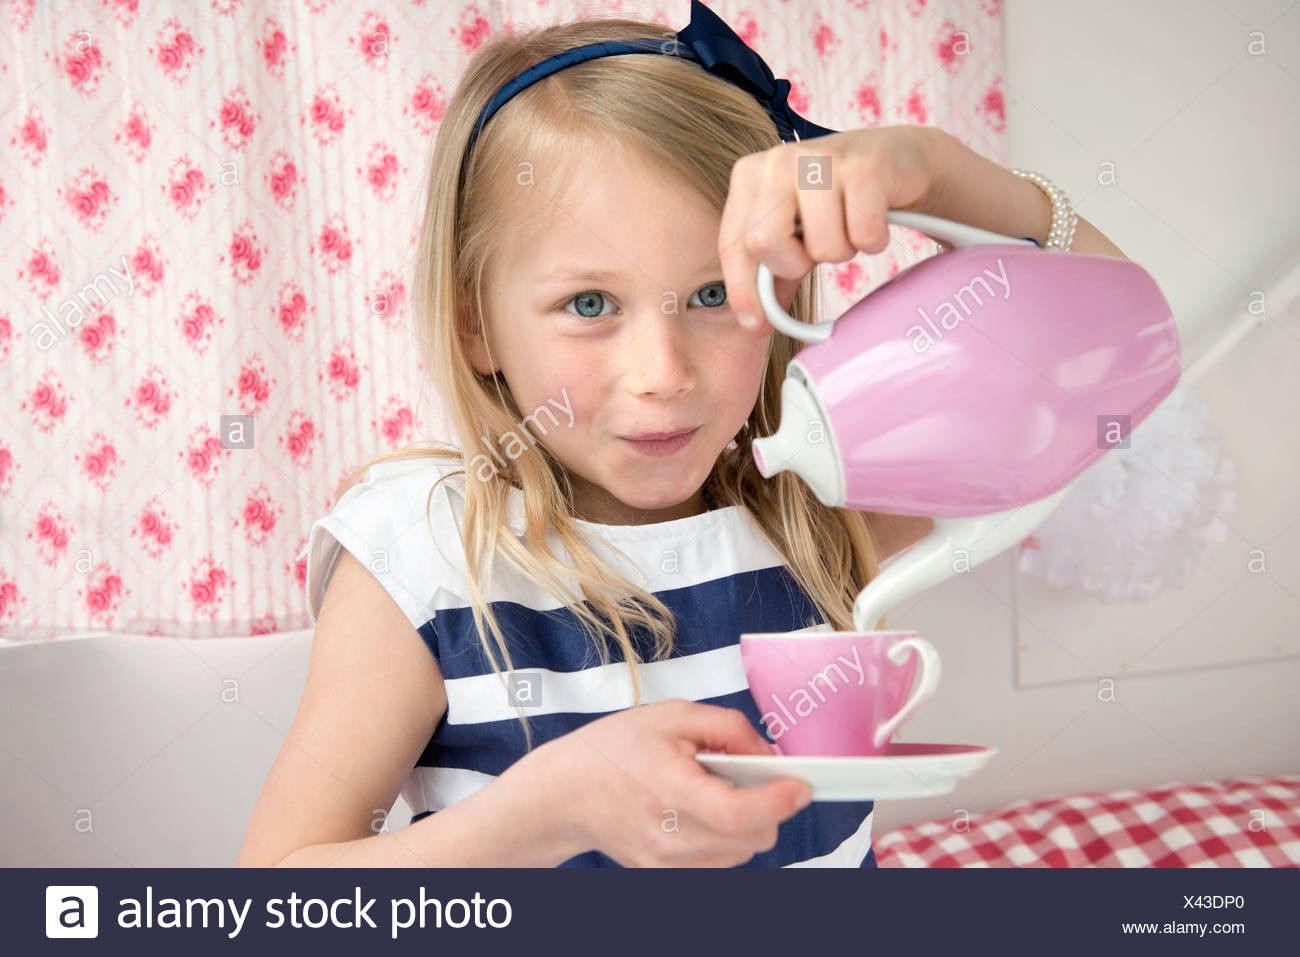 Portrait of young girl pouring tea in caravan - Stock Image